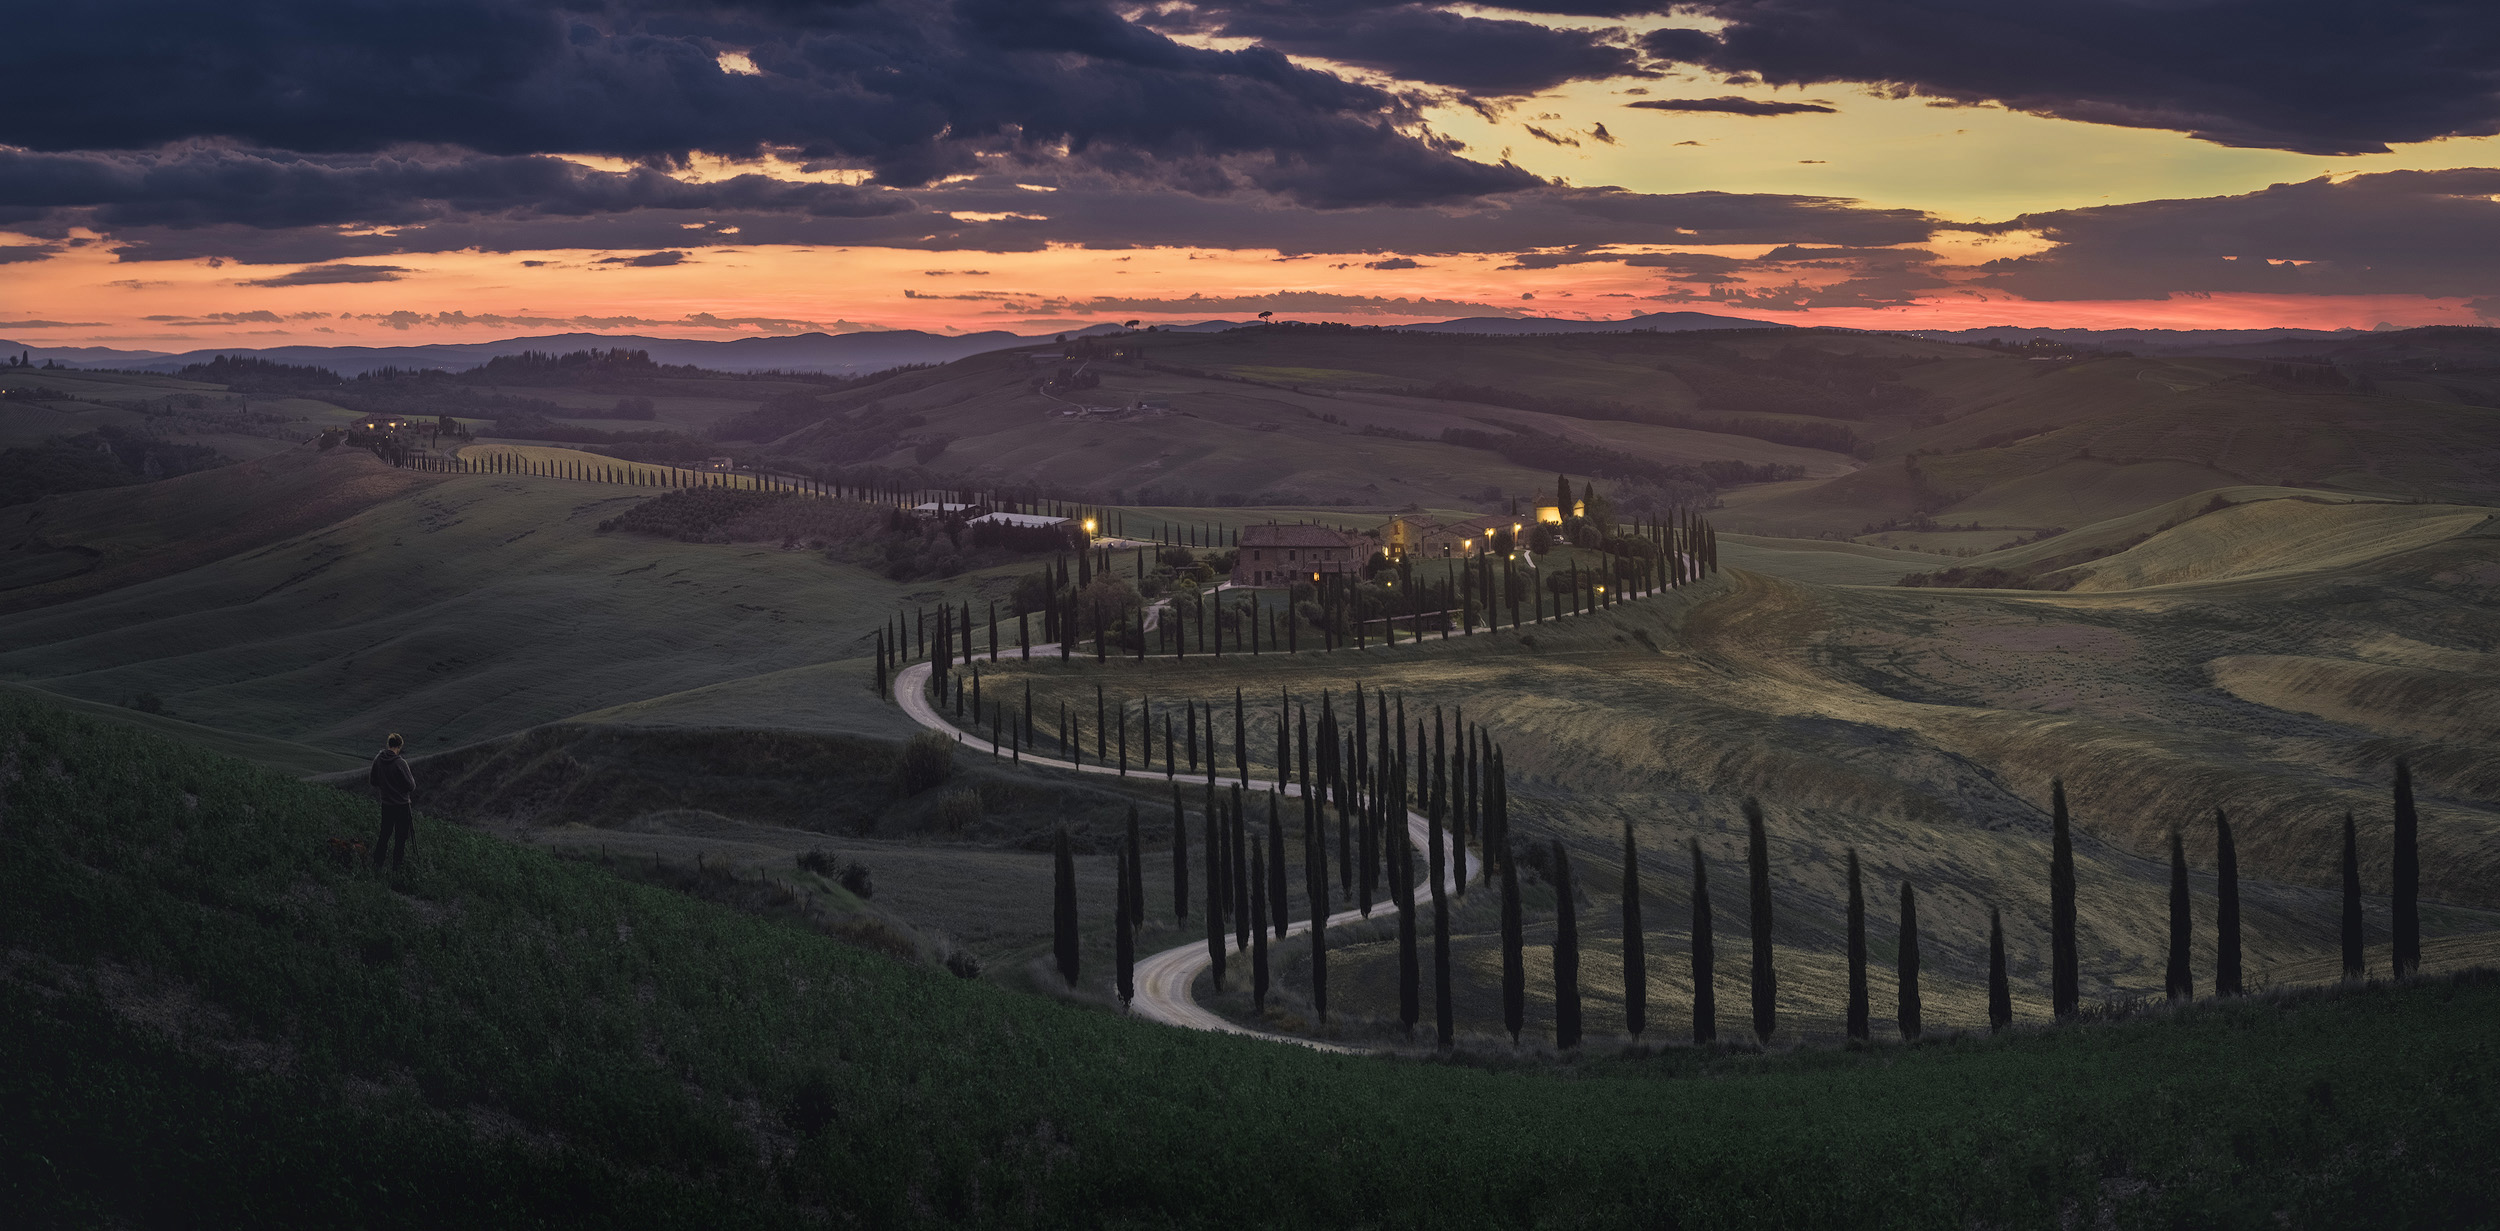 Crete Senesi   Sunset in Crete Senesi. The barren hills and winding tree lined roads here have a very different feel to the more lush and familiar Val d'Orcia a little to the south